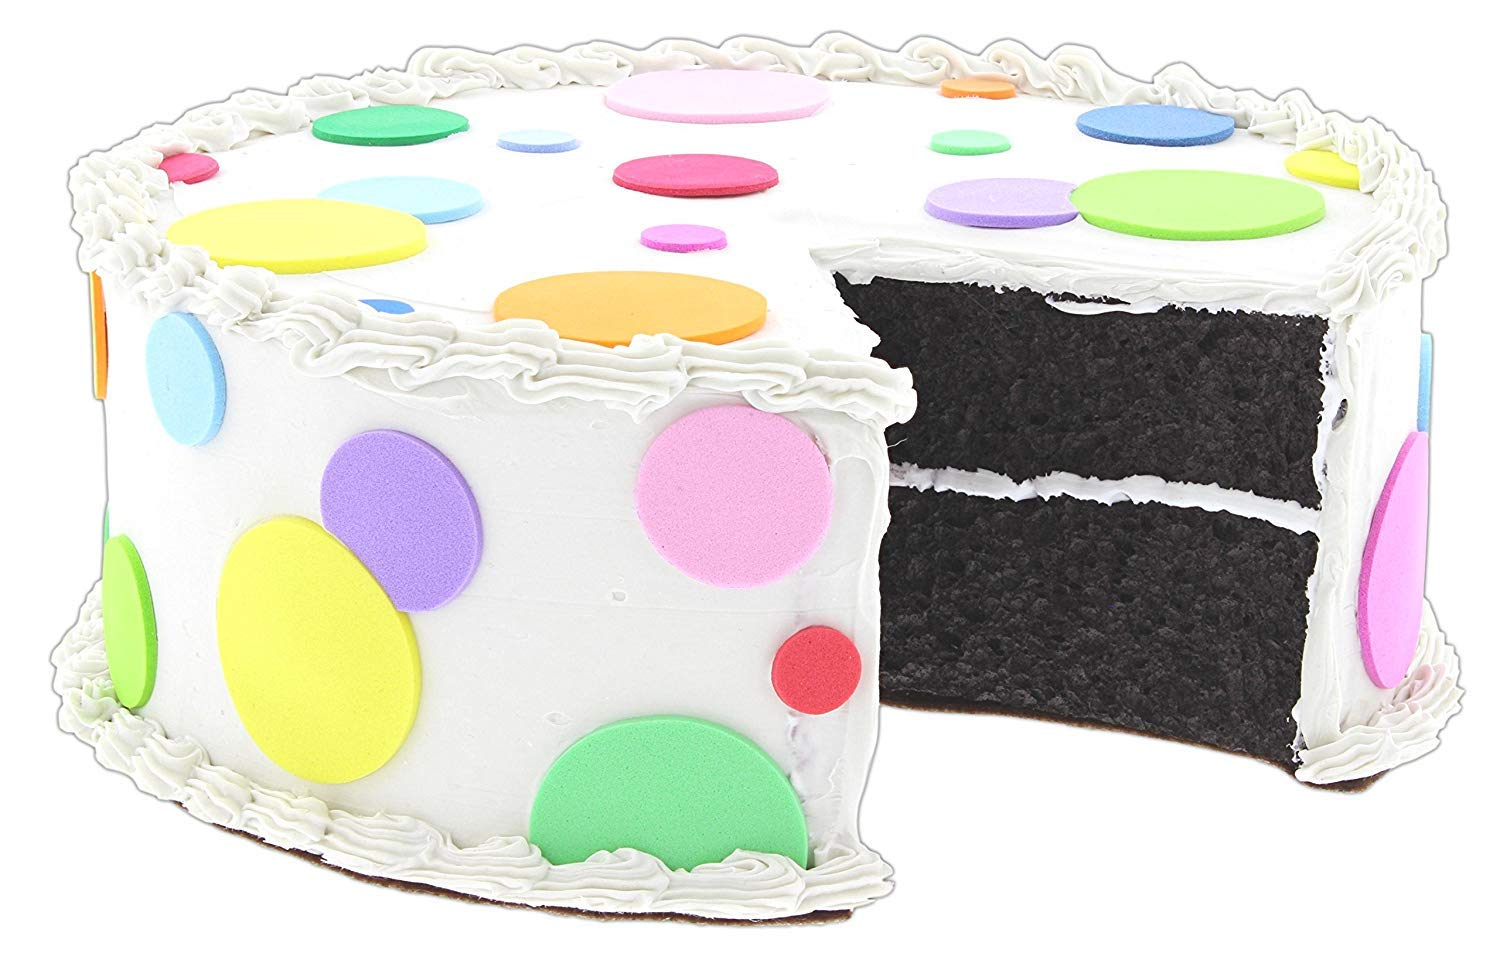 Just Dough It 10'' Replica Chocolate Cake with Polka Dot Vanilla Frosting and Slice Removed (W335A-1)